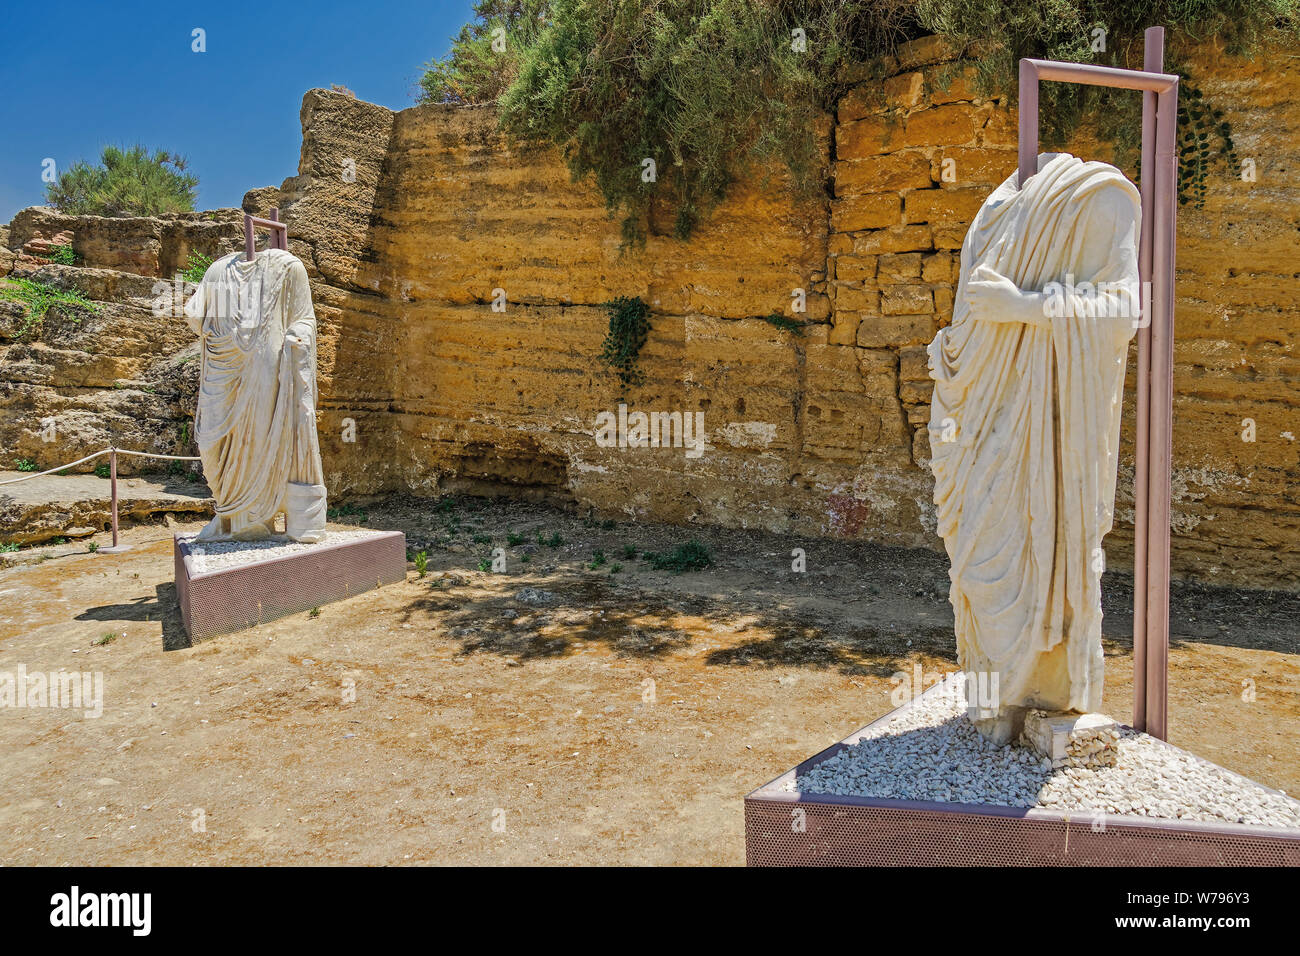 Headless Roman statues on display in archaeological site. Two torso marble statues exhibited at Valley of the Temples Park in Agrigento Sicily Italy. Stock Photo